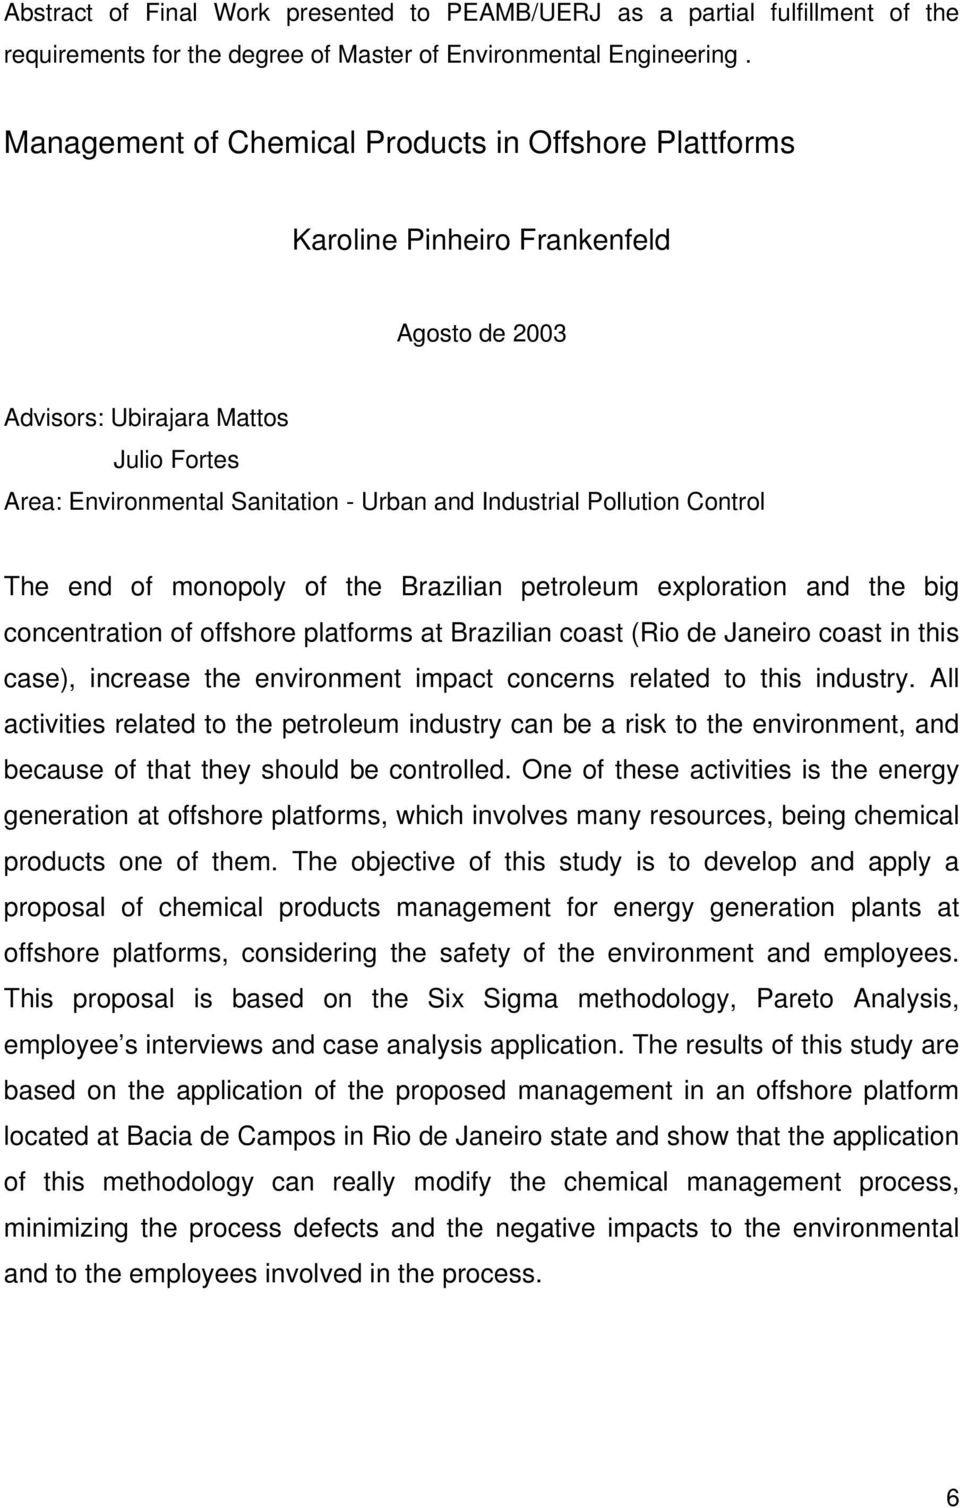 Pollution Control The end of monopoly of the Brazilian petroleum exploration and the big concentration of offshore platforms at Brazilian coast (Rio de Janeiro coast in this case), increase the